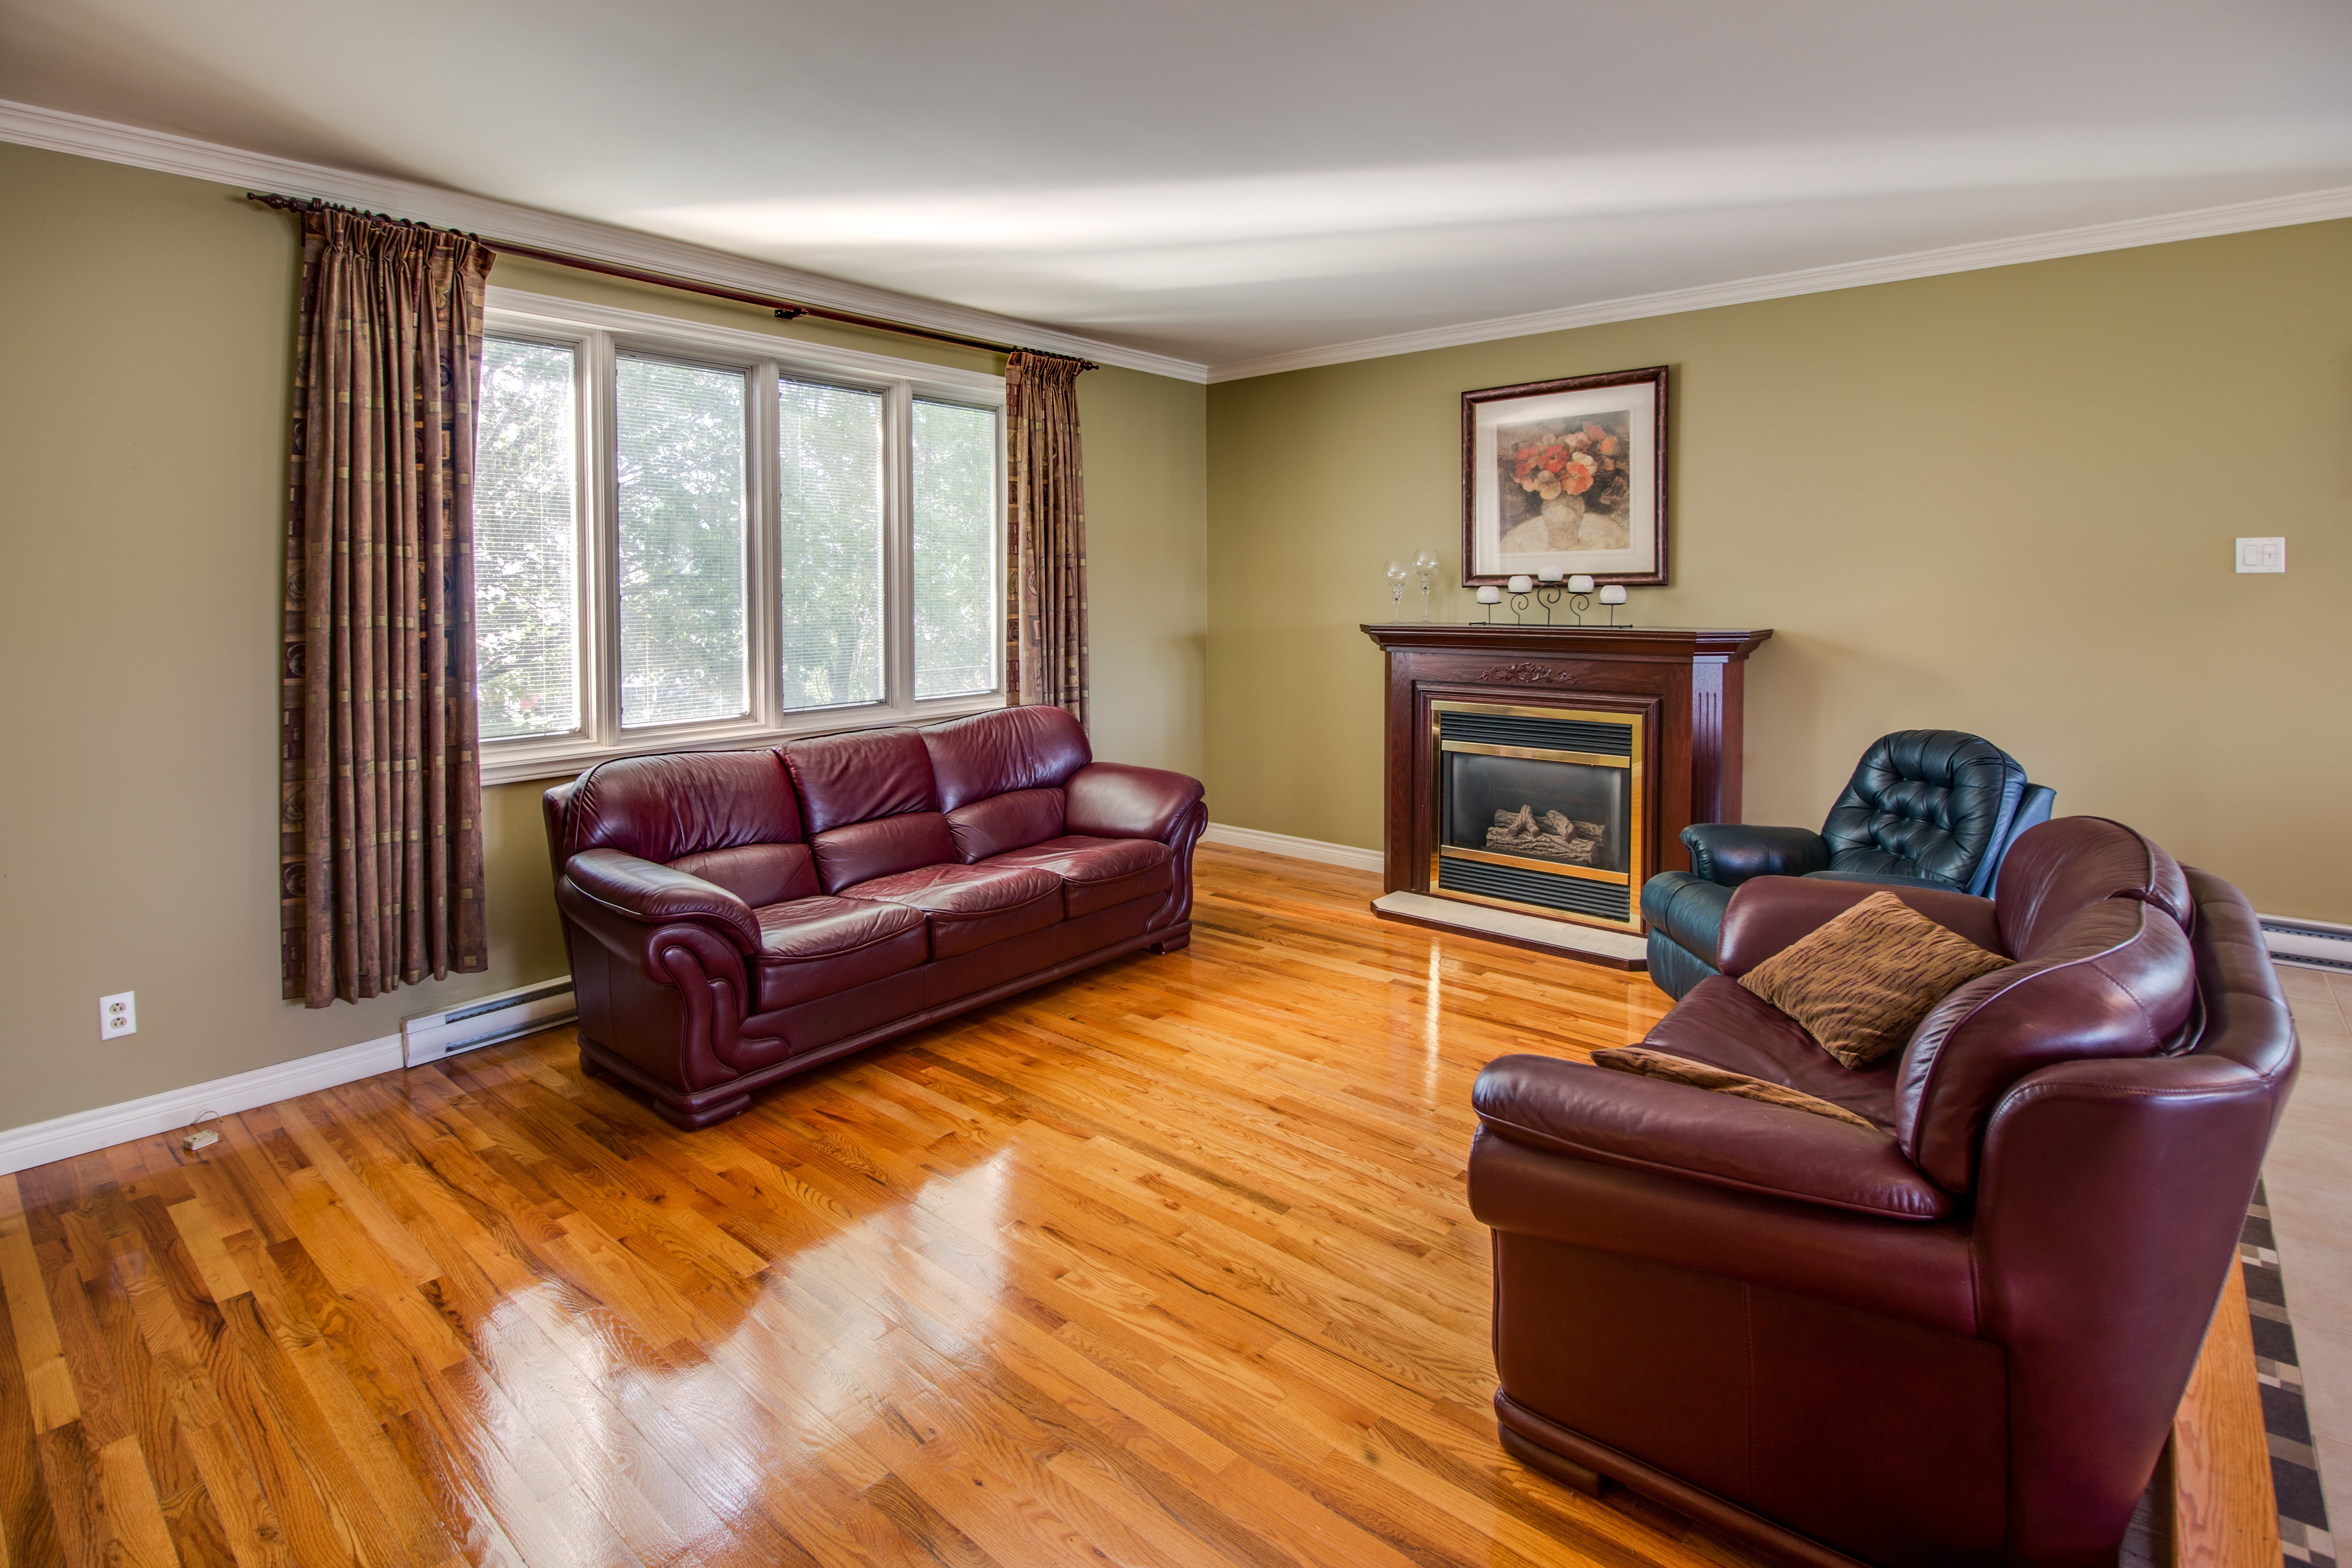 Old Bay Bulls Road,St. John's,3 Bedrooms Bedrooms,1 BathroomBathrooms,Single Family,Old Bay Bulls Road,1161307